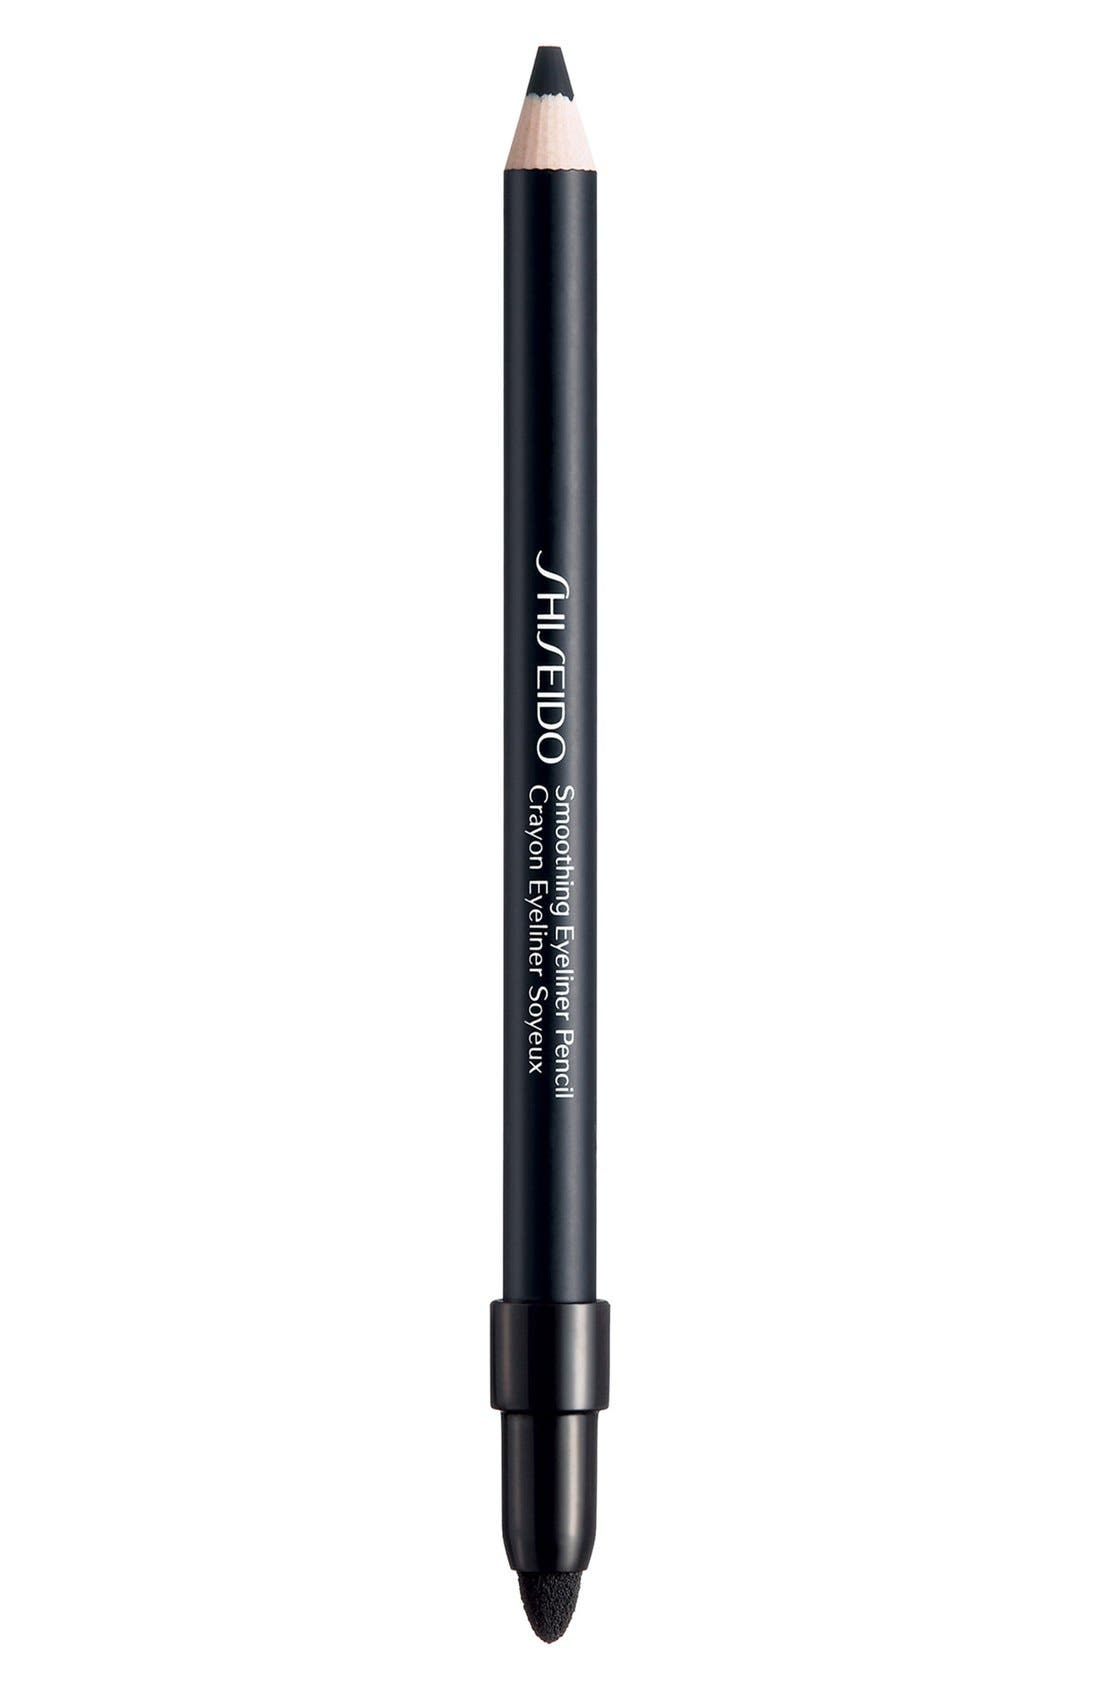 'The Makeup' Smoothing Eyeliner Pencil,                             Main thumbnail 1, color,